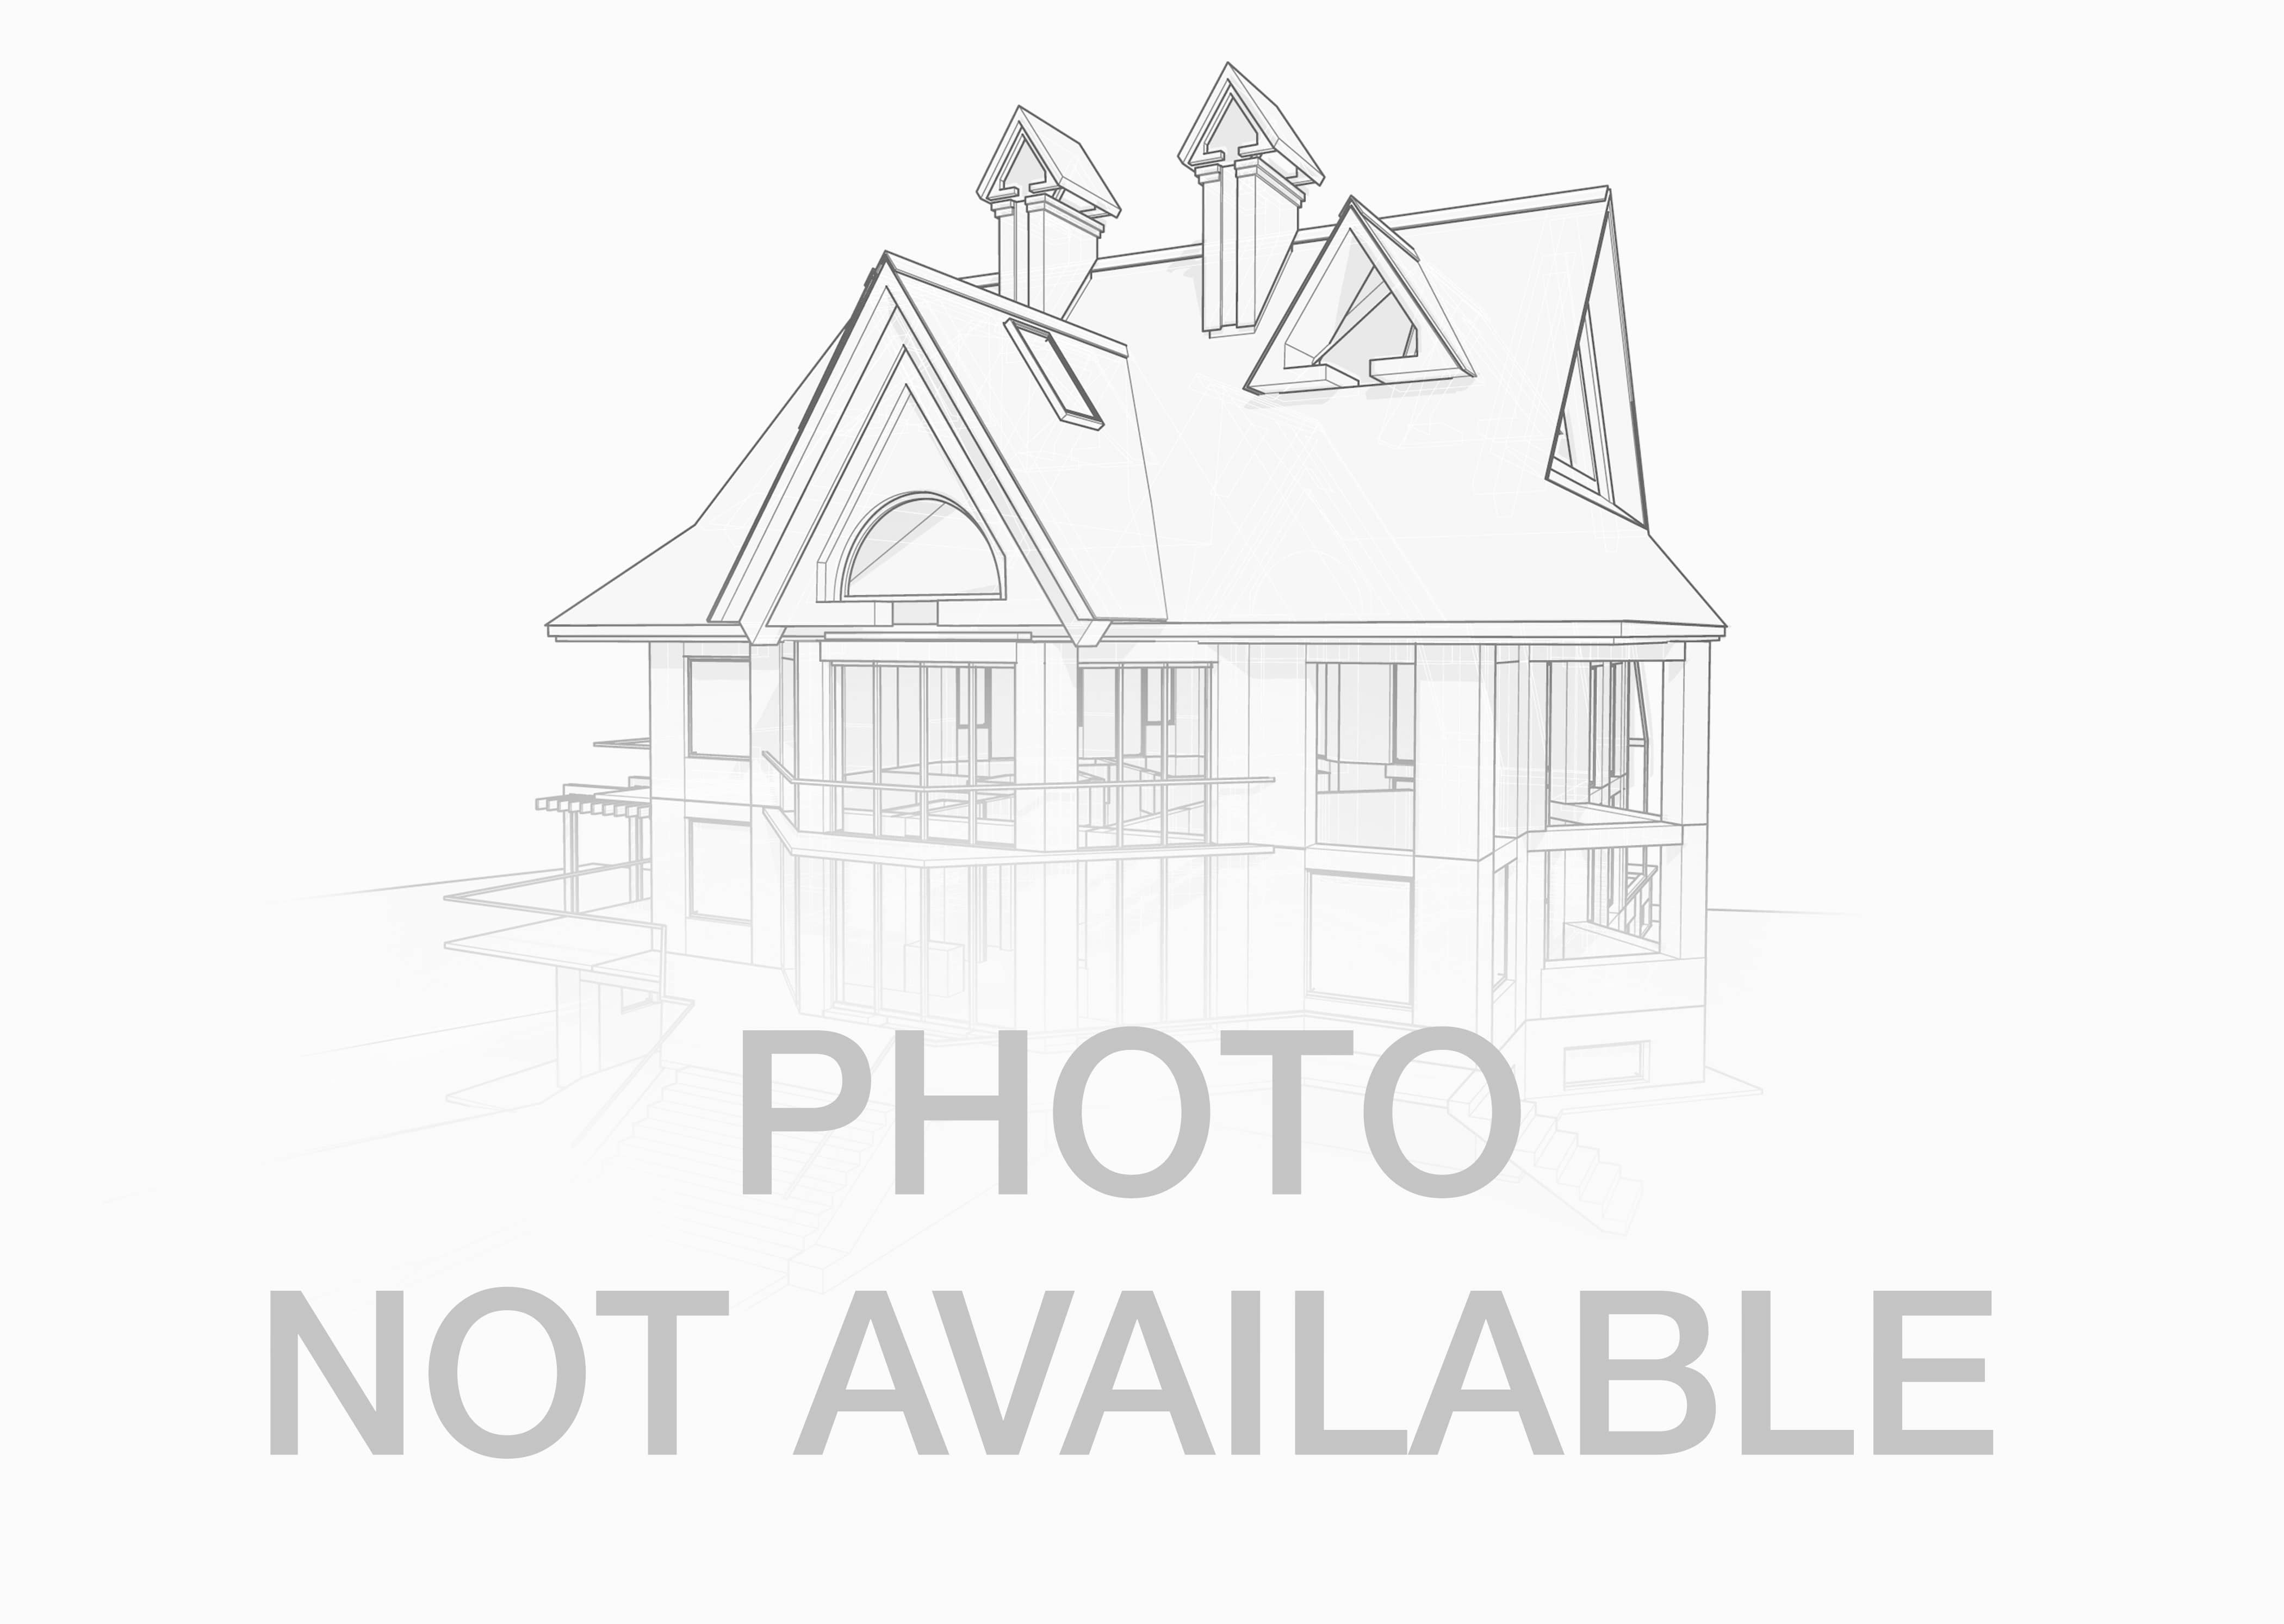 New Franklin Oh Homes For Sale